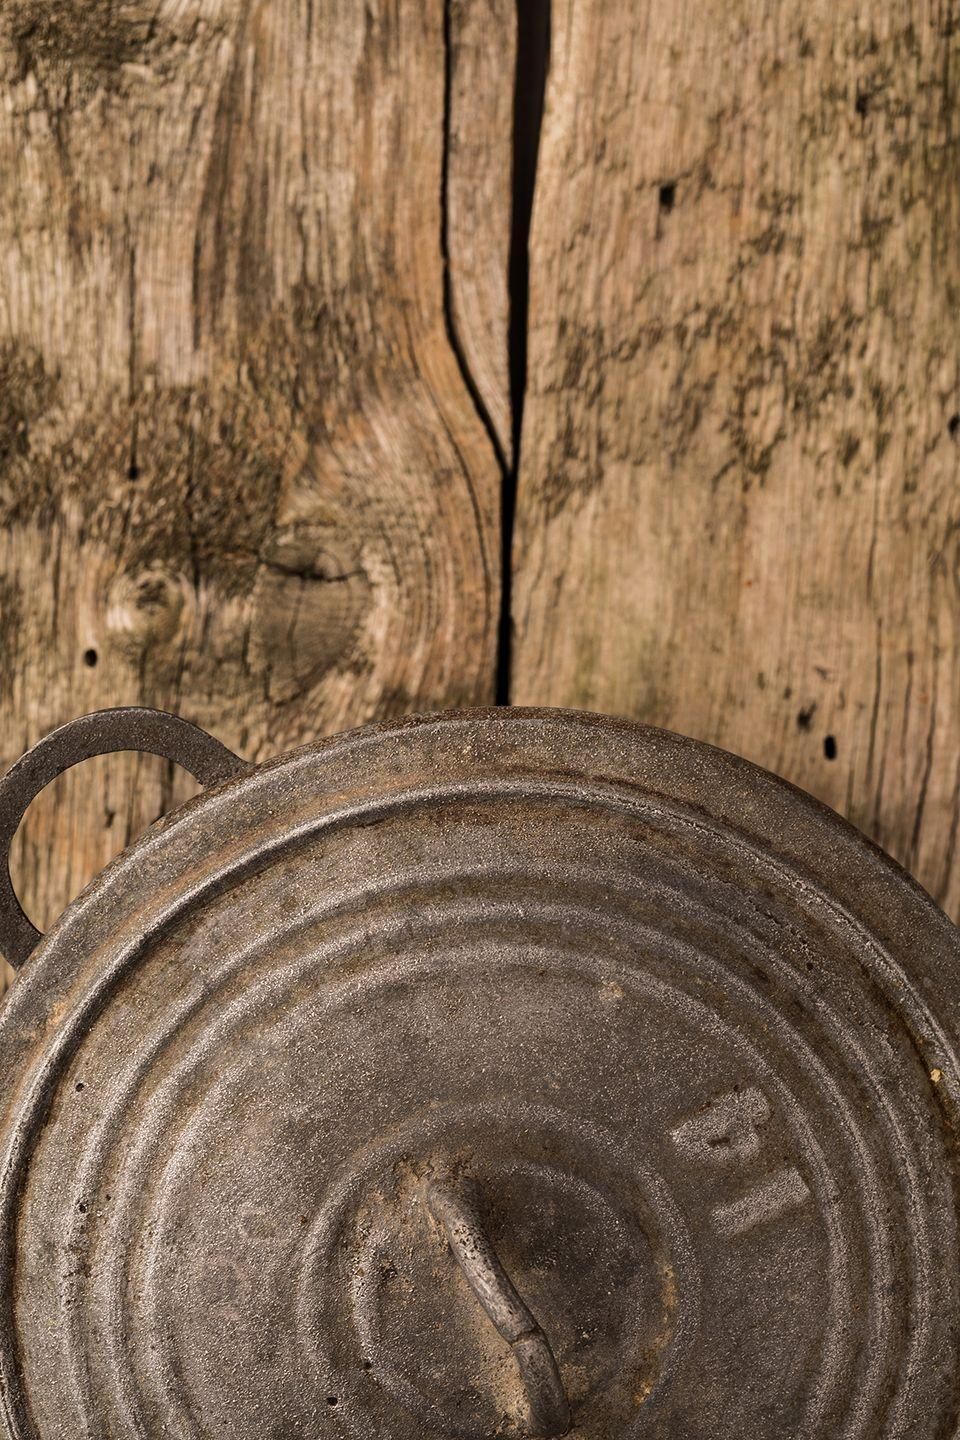 """<p>They may look beautifully distressed, but scratched, rusty, or worn-down baking sheets, pots, pans, and other go-to kitchen supplies are likely not safe for actual use, according to <a href=""""https://www.rd.com/advice/saving-money/never-buy-garage-sales/"""" rel=""""nofollow noopener"""" target=""""_blank"""" data-ylk=""""slk:Reader's Digest"""" class=""""link rapid-noclick-resp""""><em>Reader's Digest</em></a>. Chipping non-stick coatings and rust are <em>not</em> safe to consume food off of, and over-used cookware may seep harmful chemicals into your food. When it comes to <a href=""""https://www.countryliving.com/shopping/antiques/g4876/kitchen-collectibles/"""" rel=""""nofollow noopener"""" target=""""_blank"""" data-ylk=""""slk:vintage kitchen cookware"""" class=""""link rapid-noclick-resp"""">vintage kitchen cookware</a>, you may want to stick to just using them for decoration and not for food consumption.</p>"""